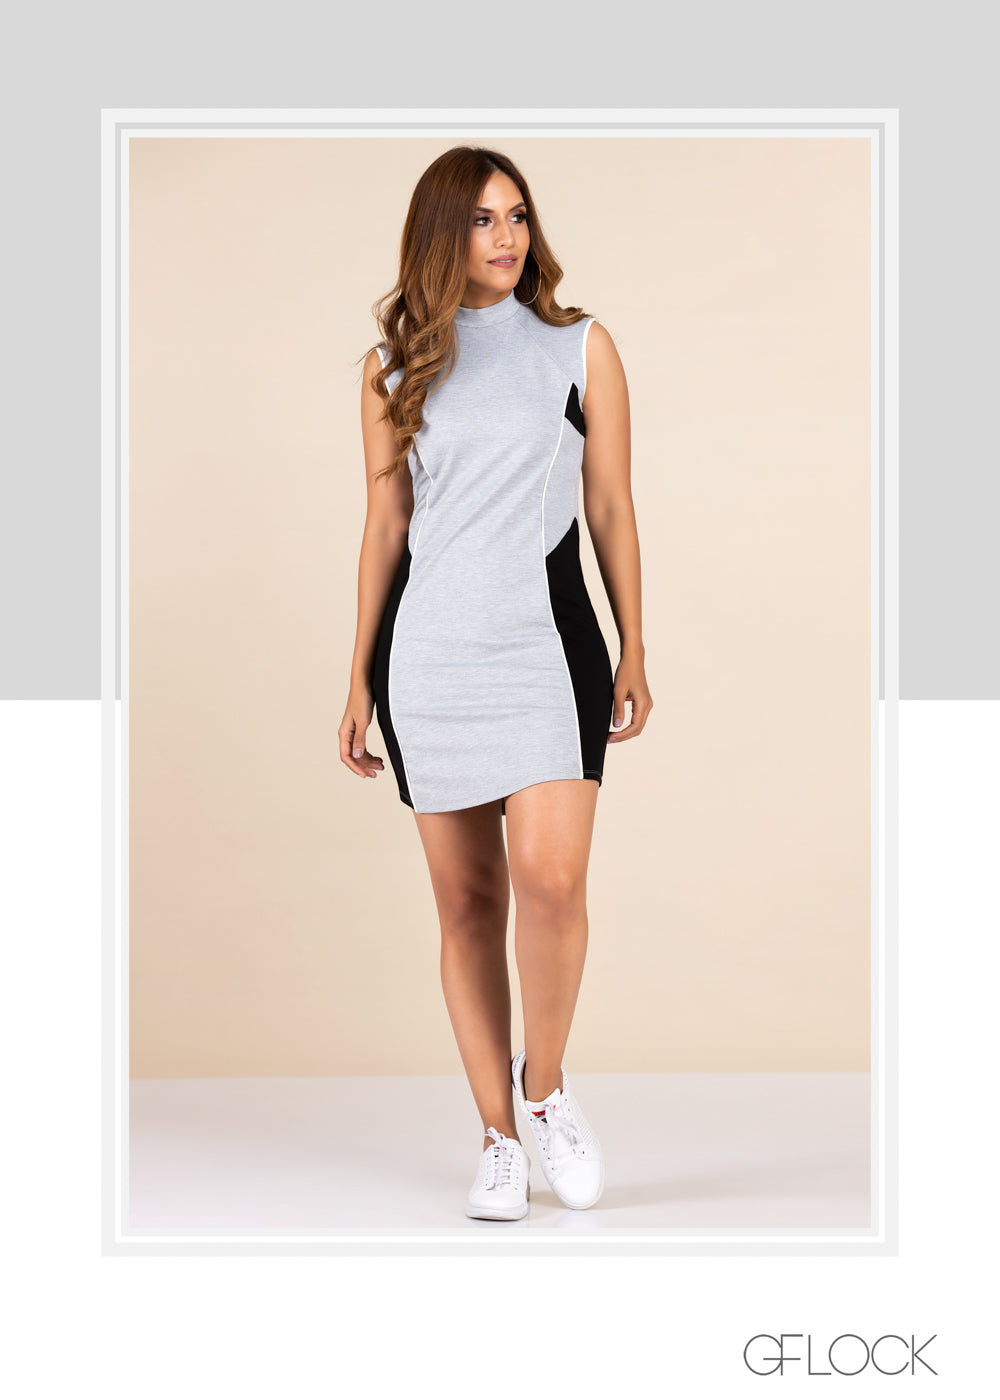 Sleeveless Dress - GFLOCK.LK